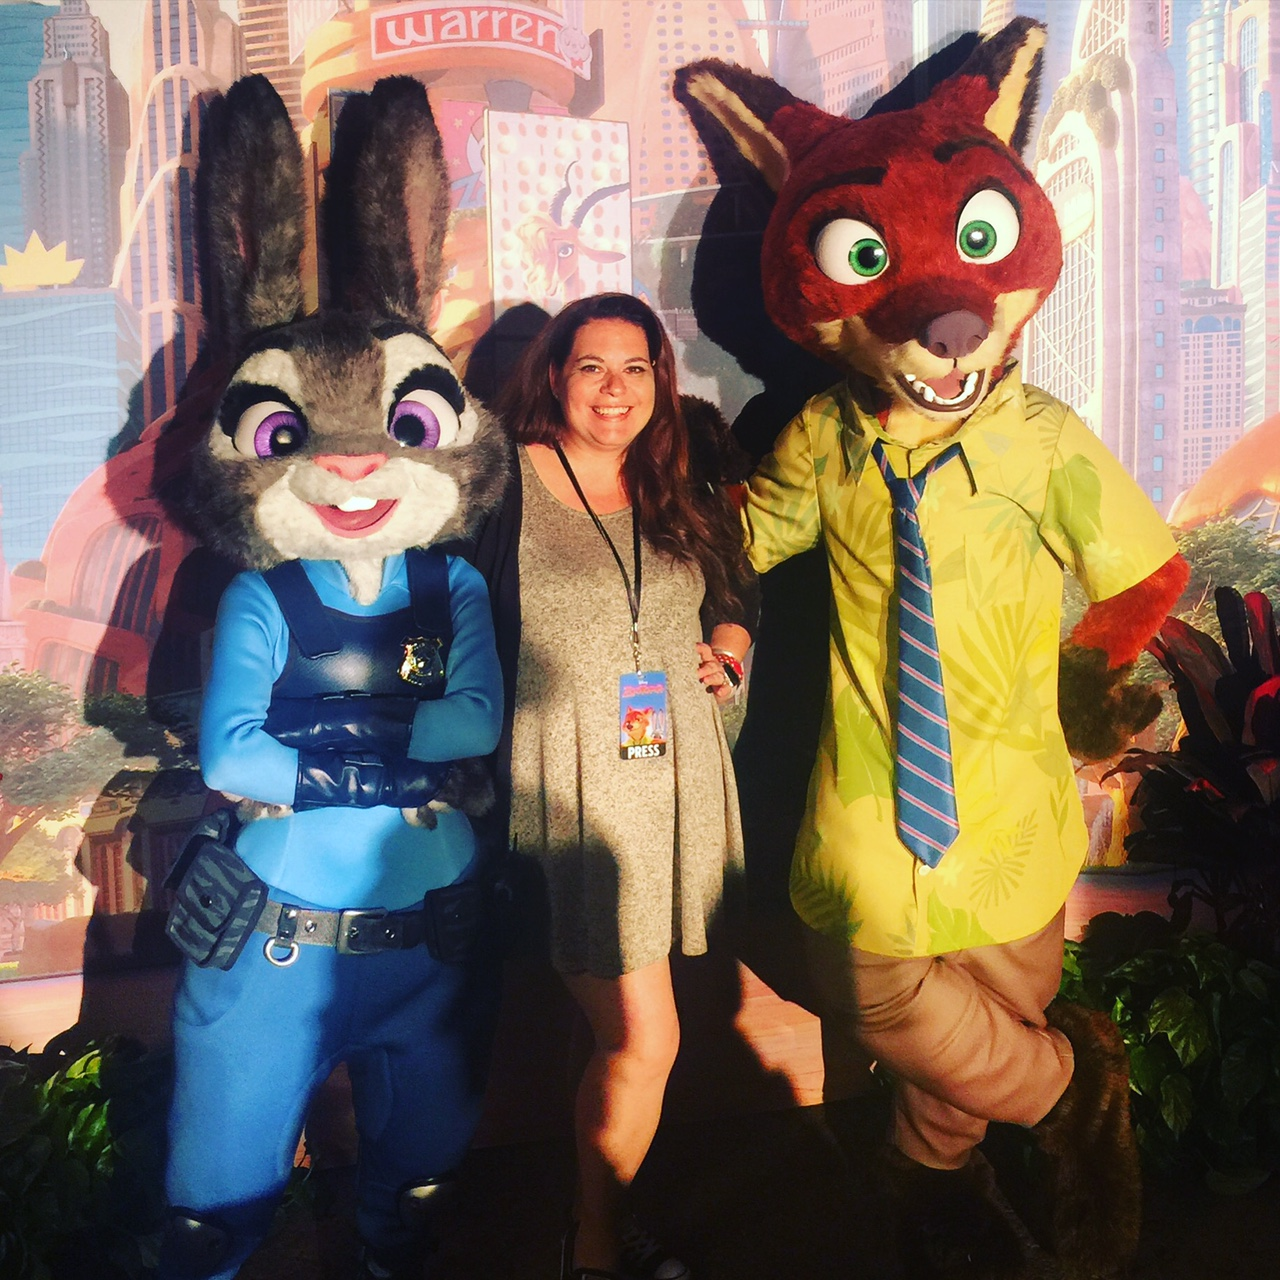 Wordless Wednesday Zootopia Judy Hopps Nick Wilde ZootopiaEvent Disney's Animal Kingdom